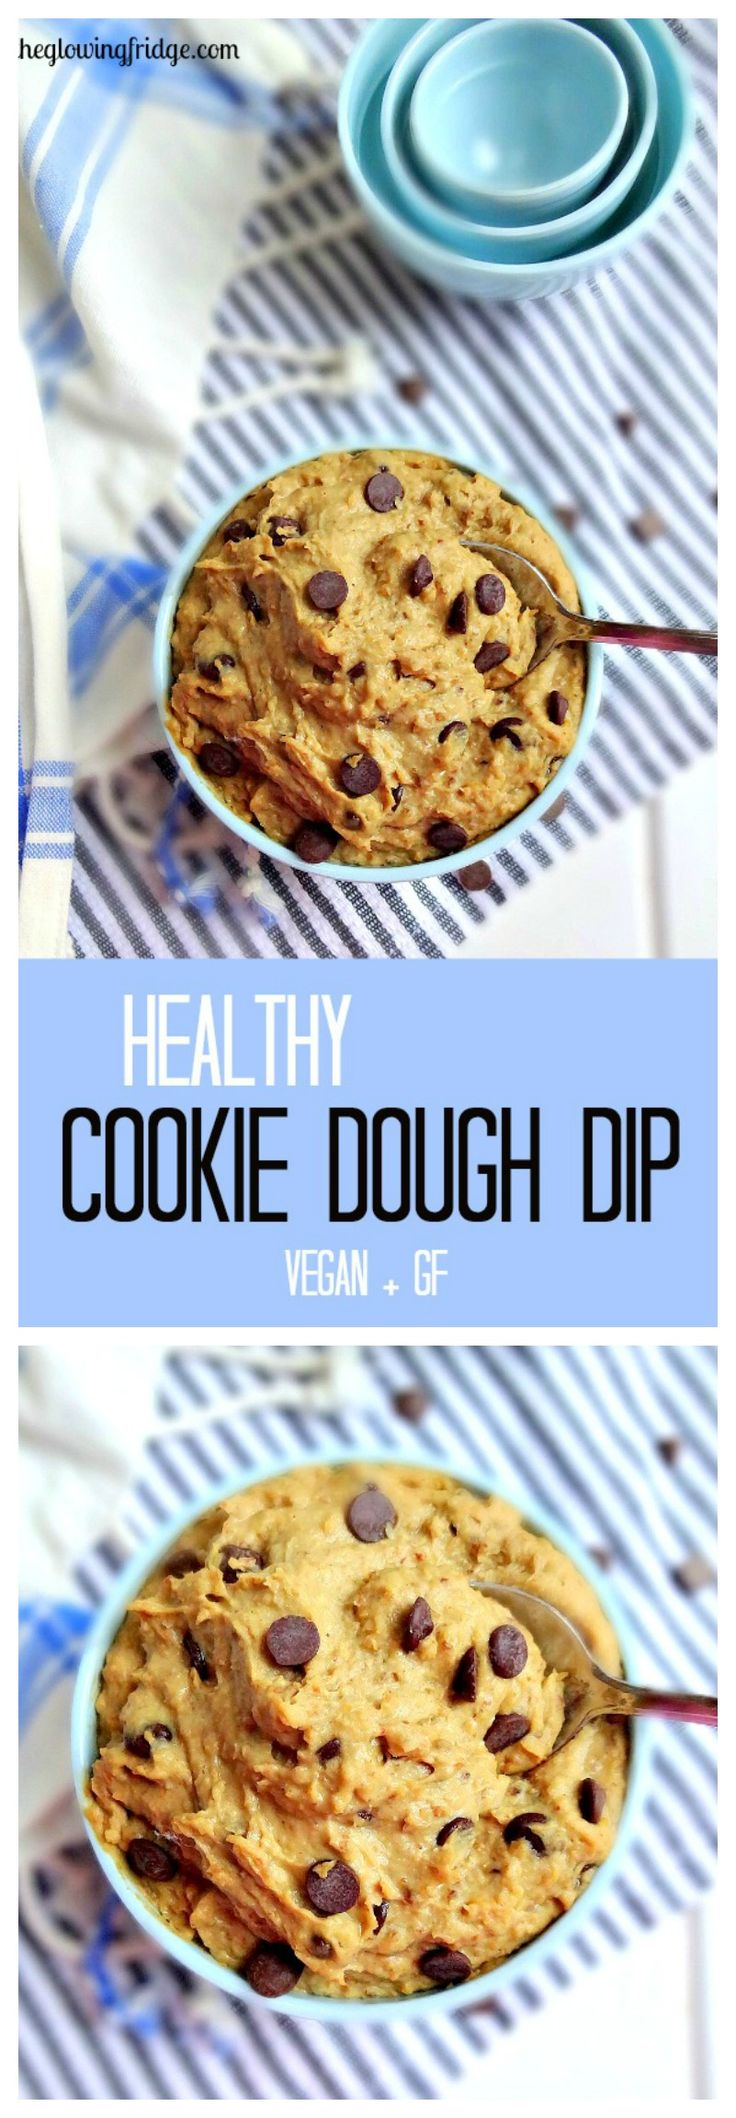 Best 25+ Cookie dough dip ideas on Pinterest | No bake cookie ...